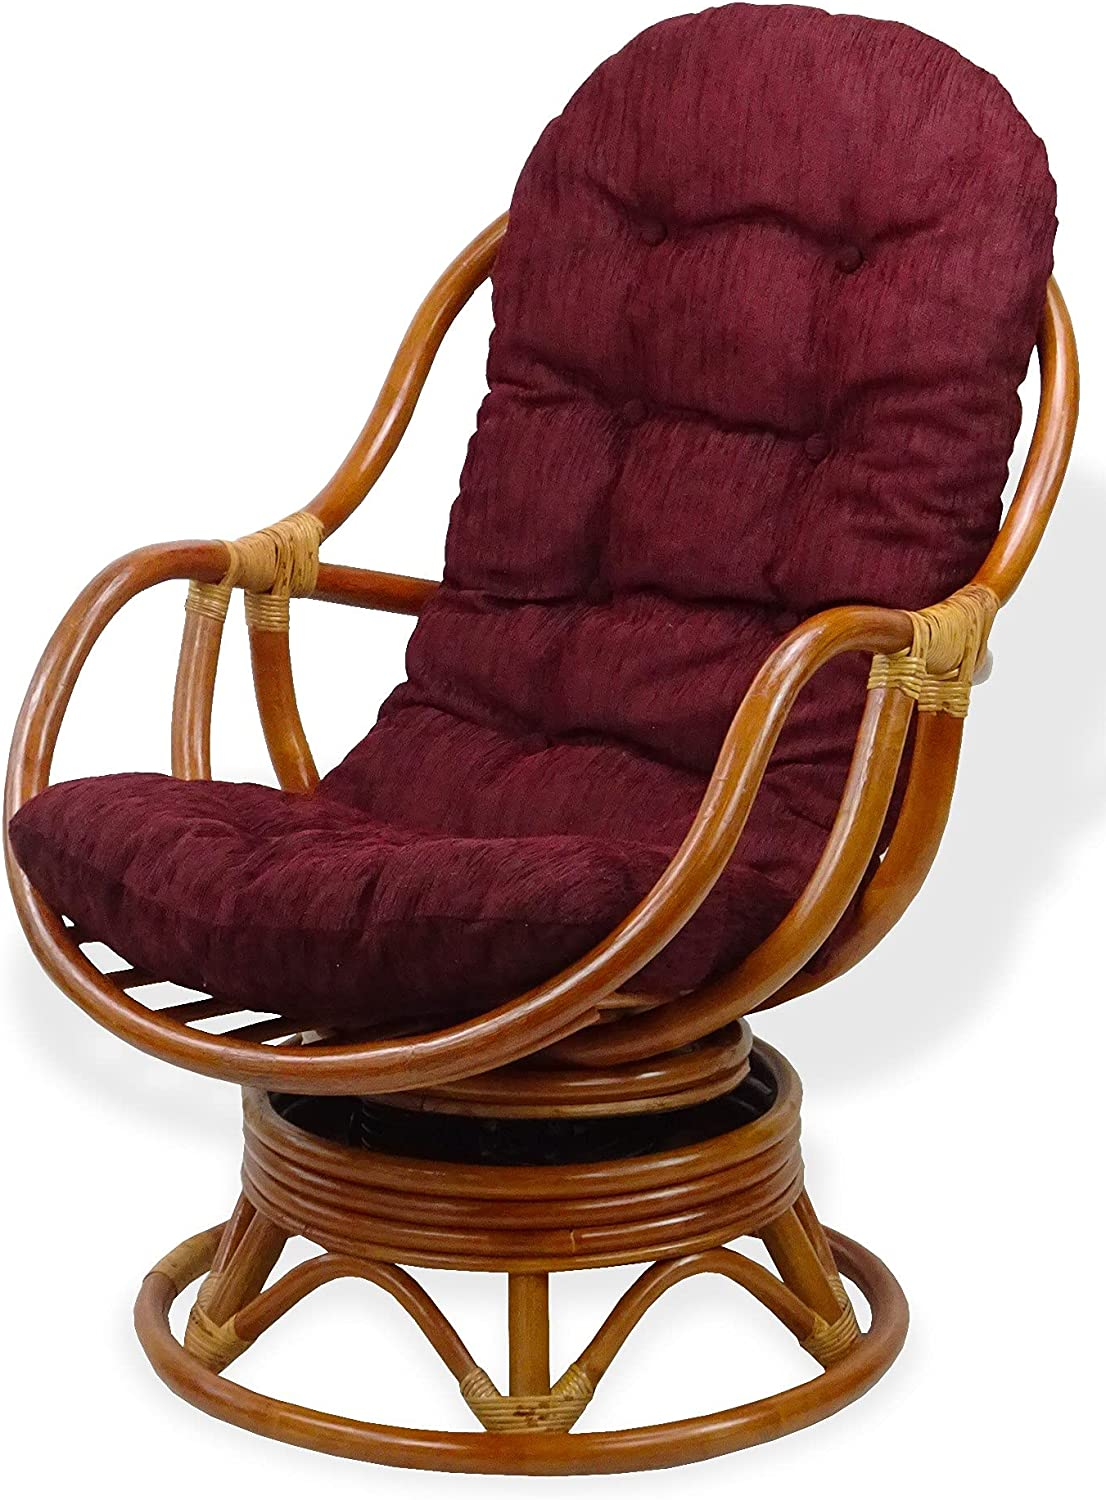 Bali Lounge Swivel Rocking Courier shipping free shipping Chair Brown Cushion Natural Ranking TOP15 Dark with